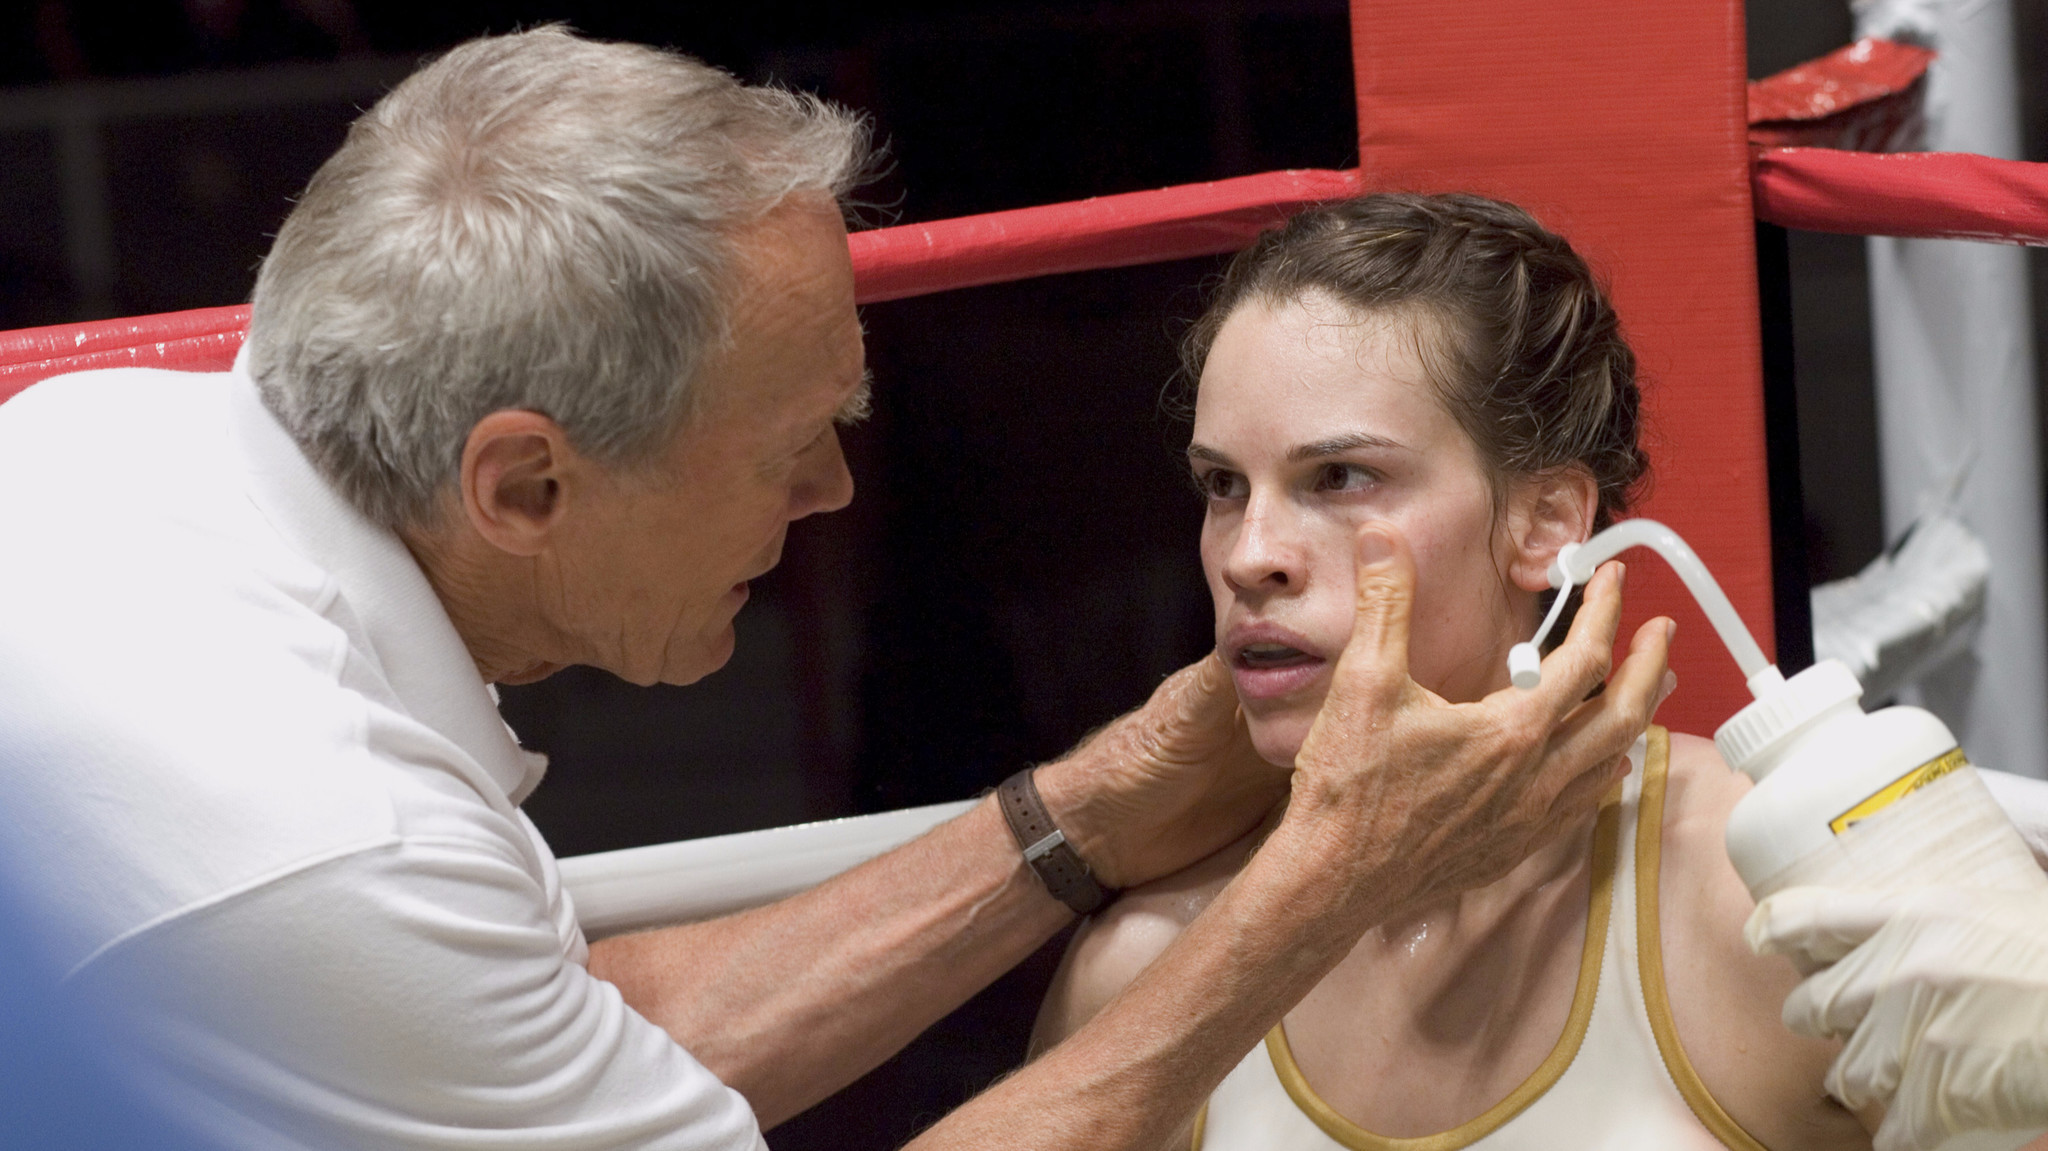 Clint Eastwood as Frankie and Hilary Swank as Maggie in